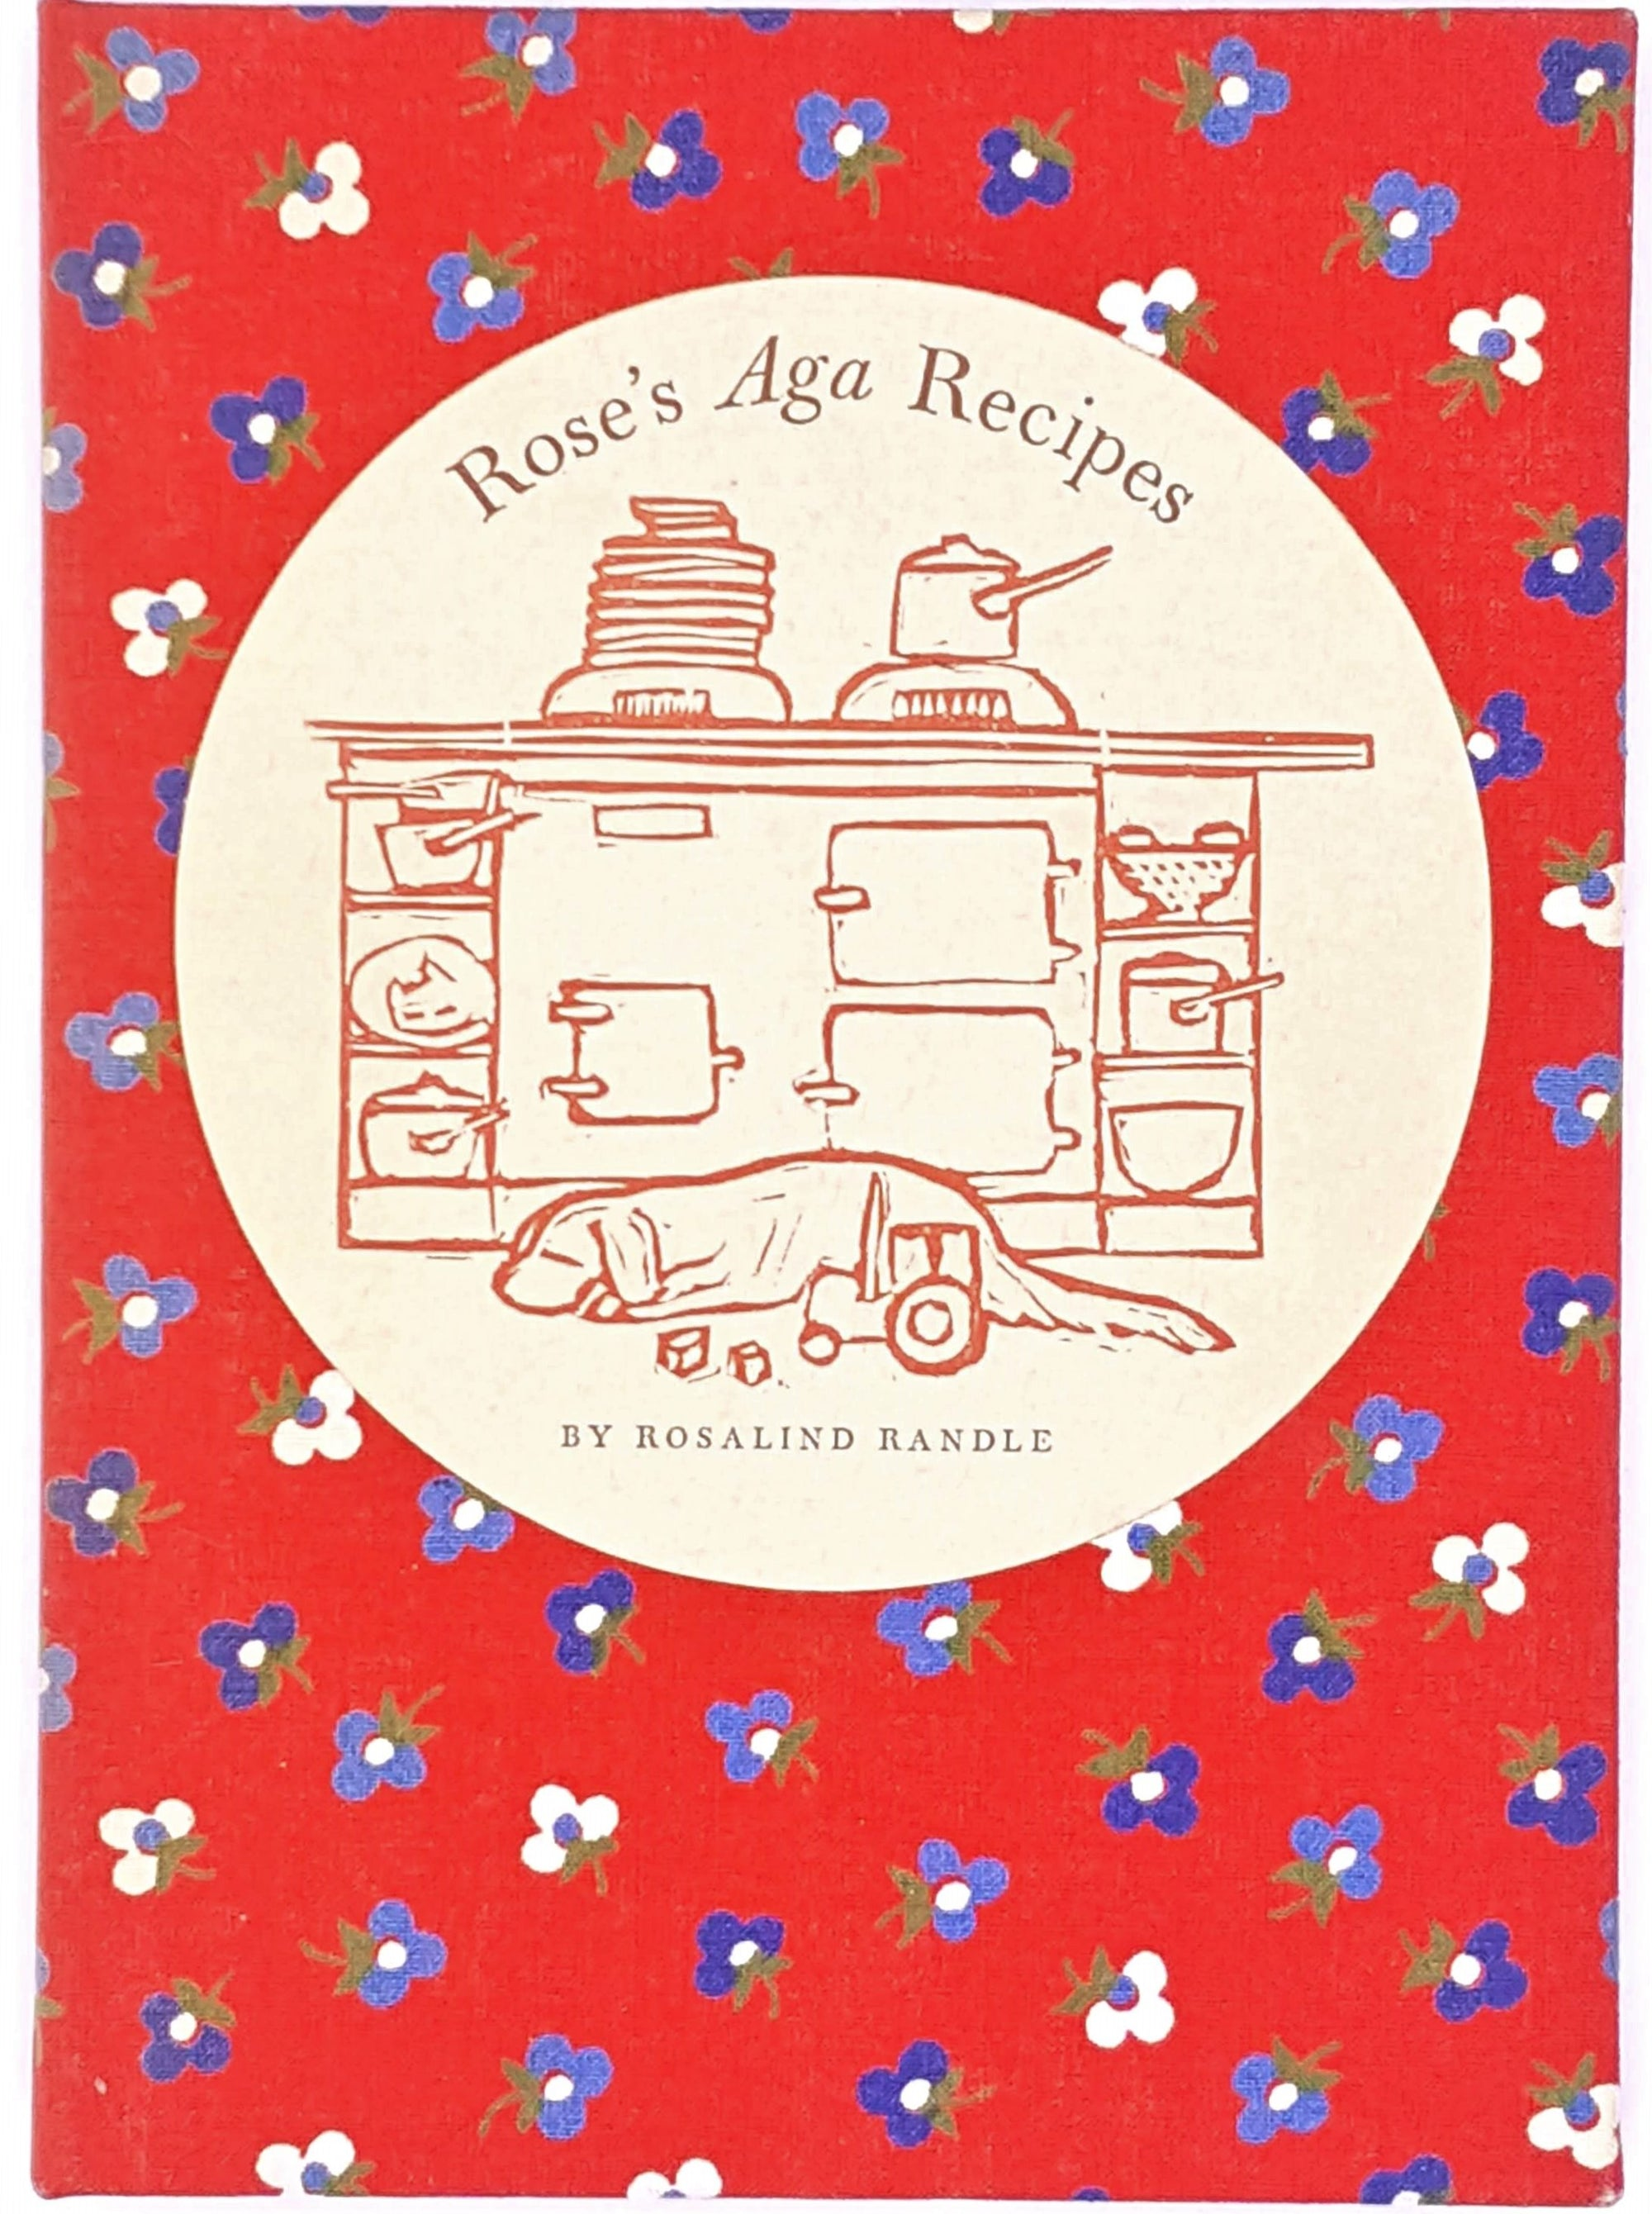 rosalind-randle-decorative-antique-country-house-library-food-patterned-recipe-cooking-thrift-geometric-old-vintage-red-books-aga-classic-